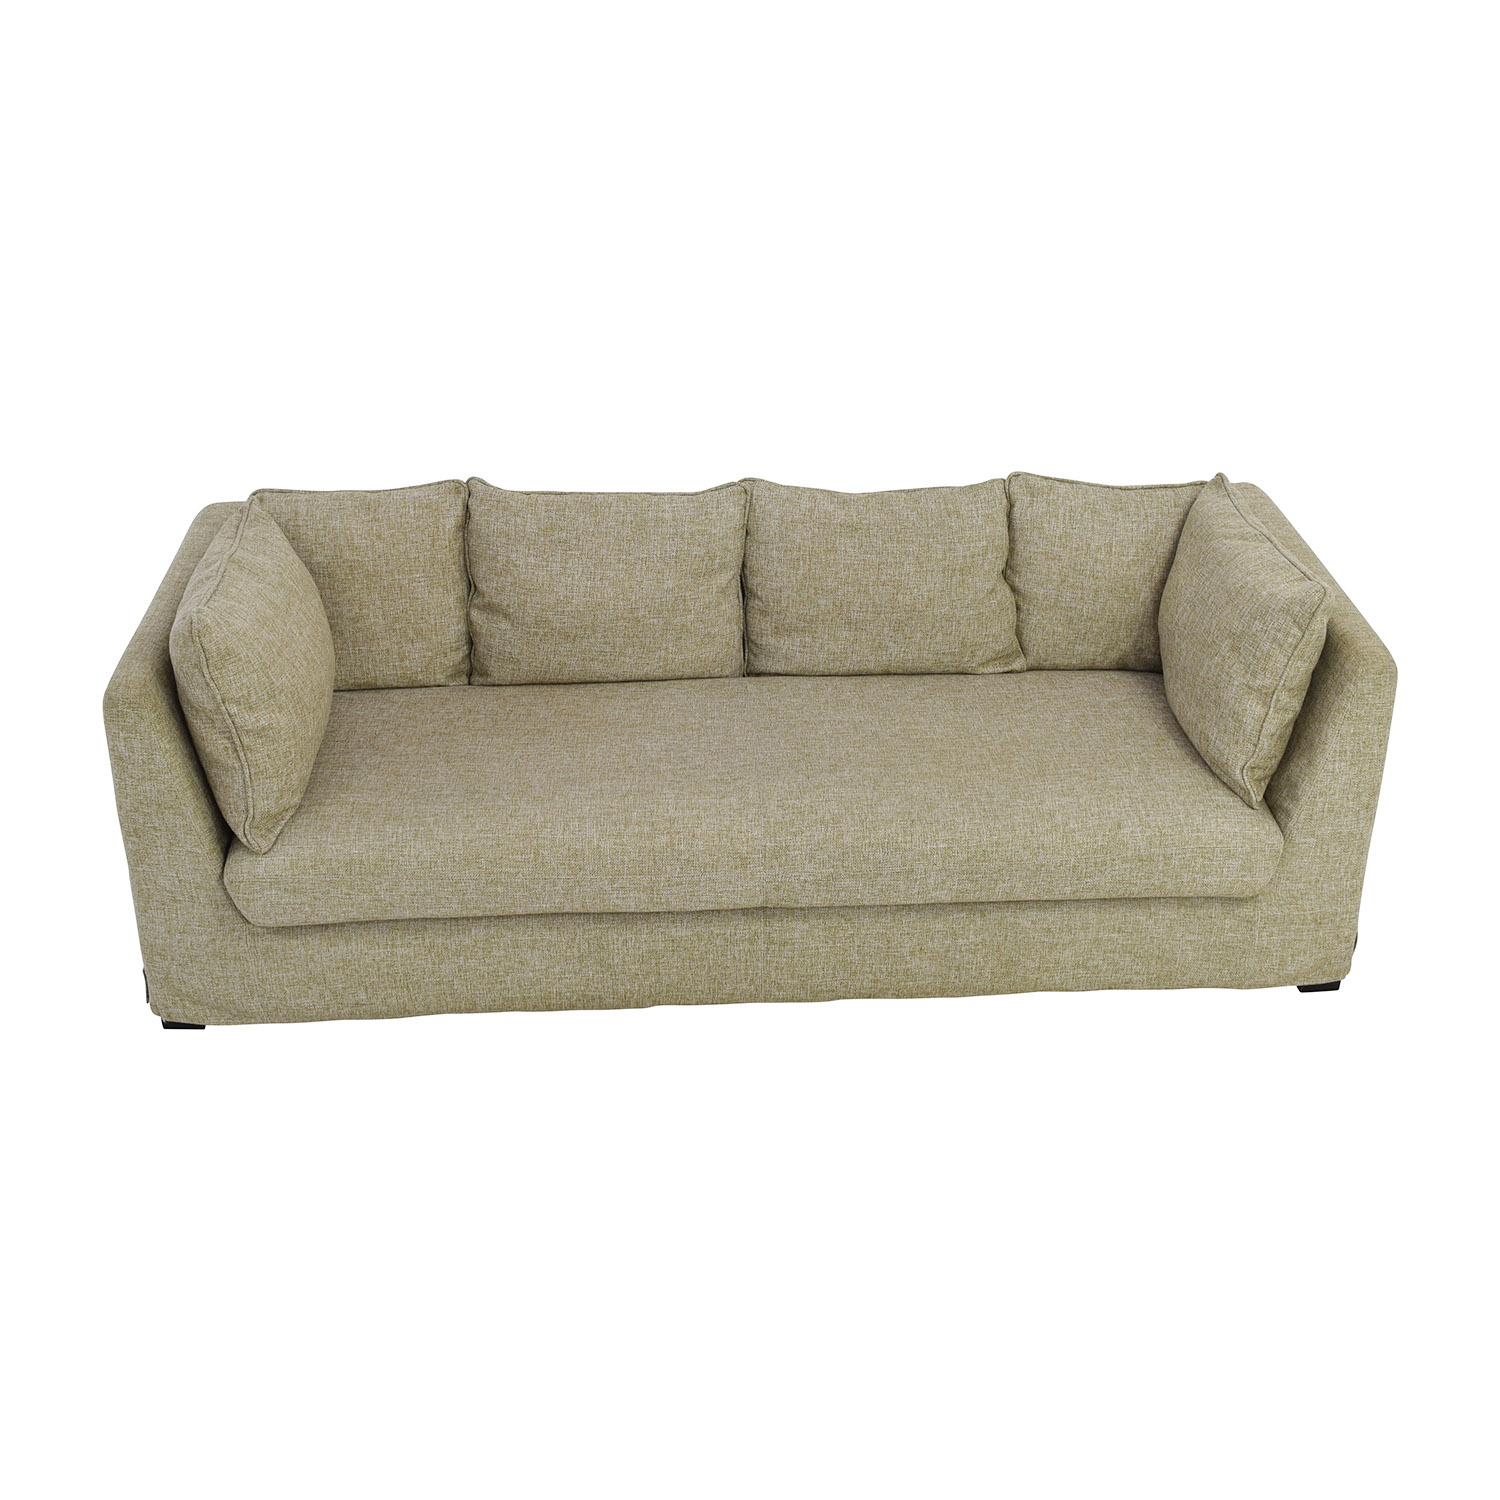 Beige Latte Three Seater Sofa